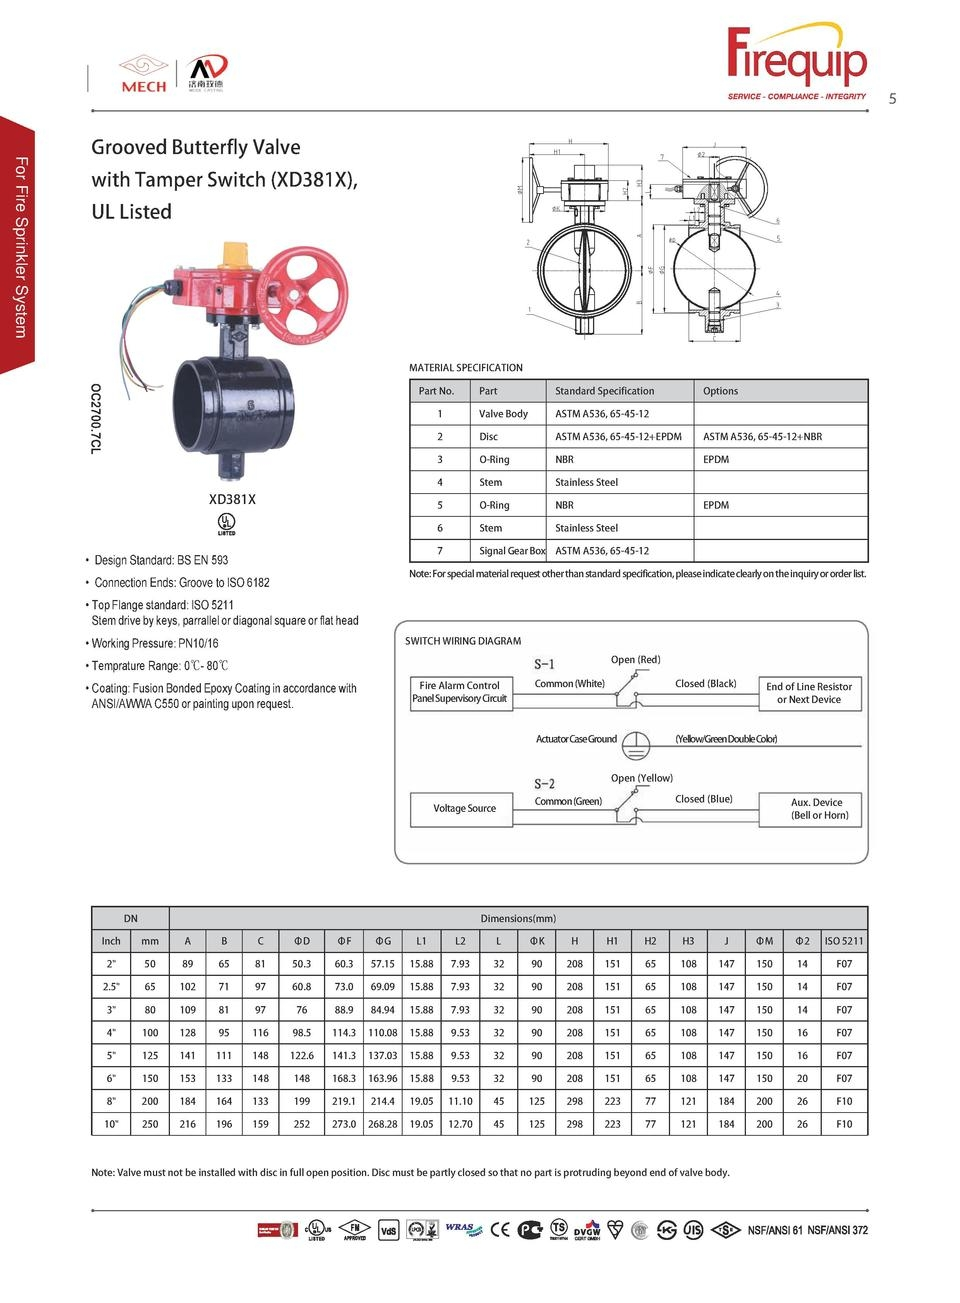 hight resolution of butterfly valve wiring diagram butterfly valve wiring diagram elegant mech valves catalogue simplebooklet 16j